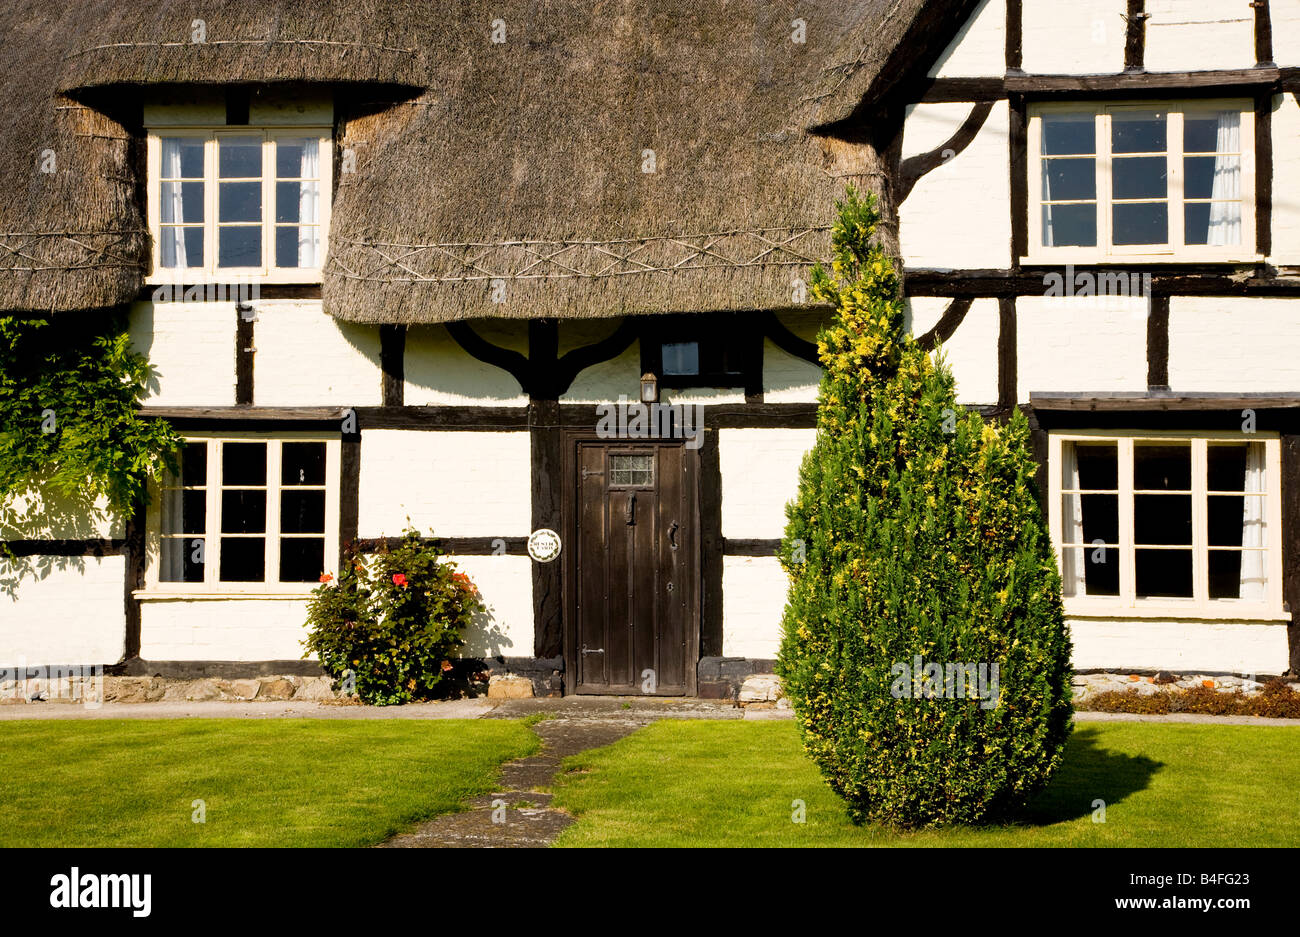 Front view of a typical English thatched, timber framed country ...